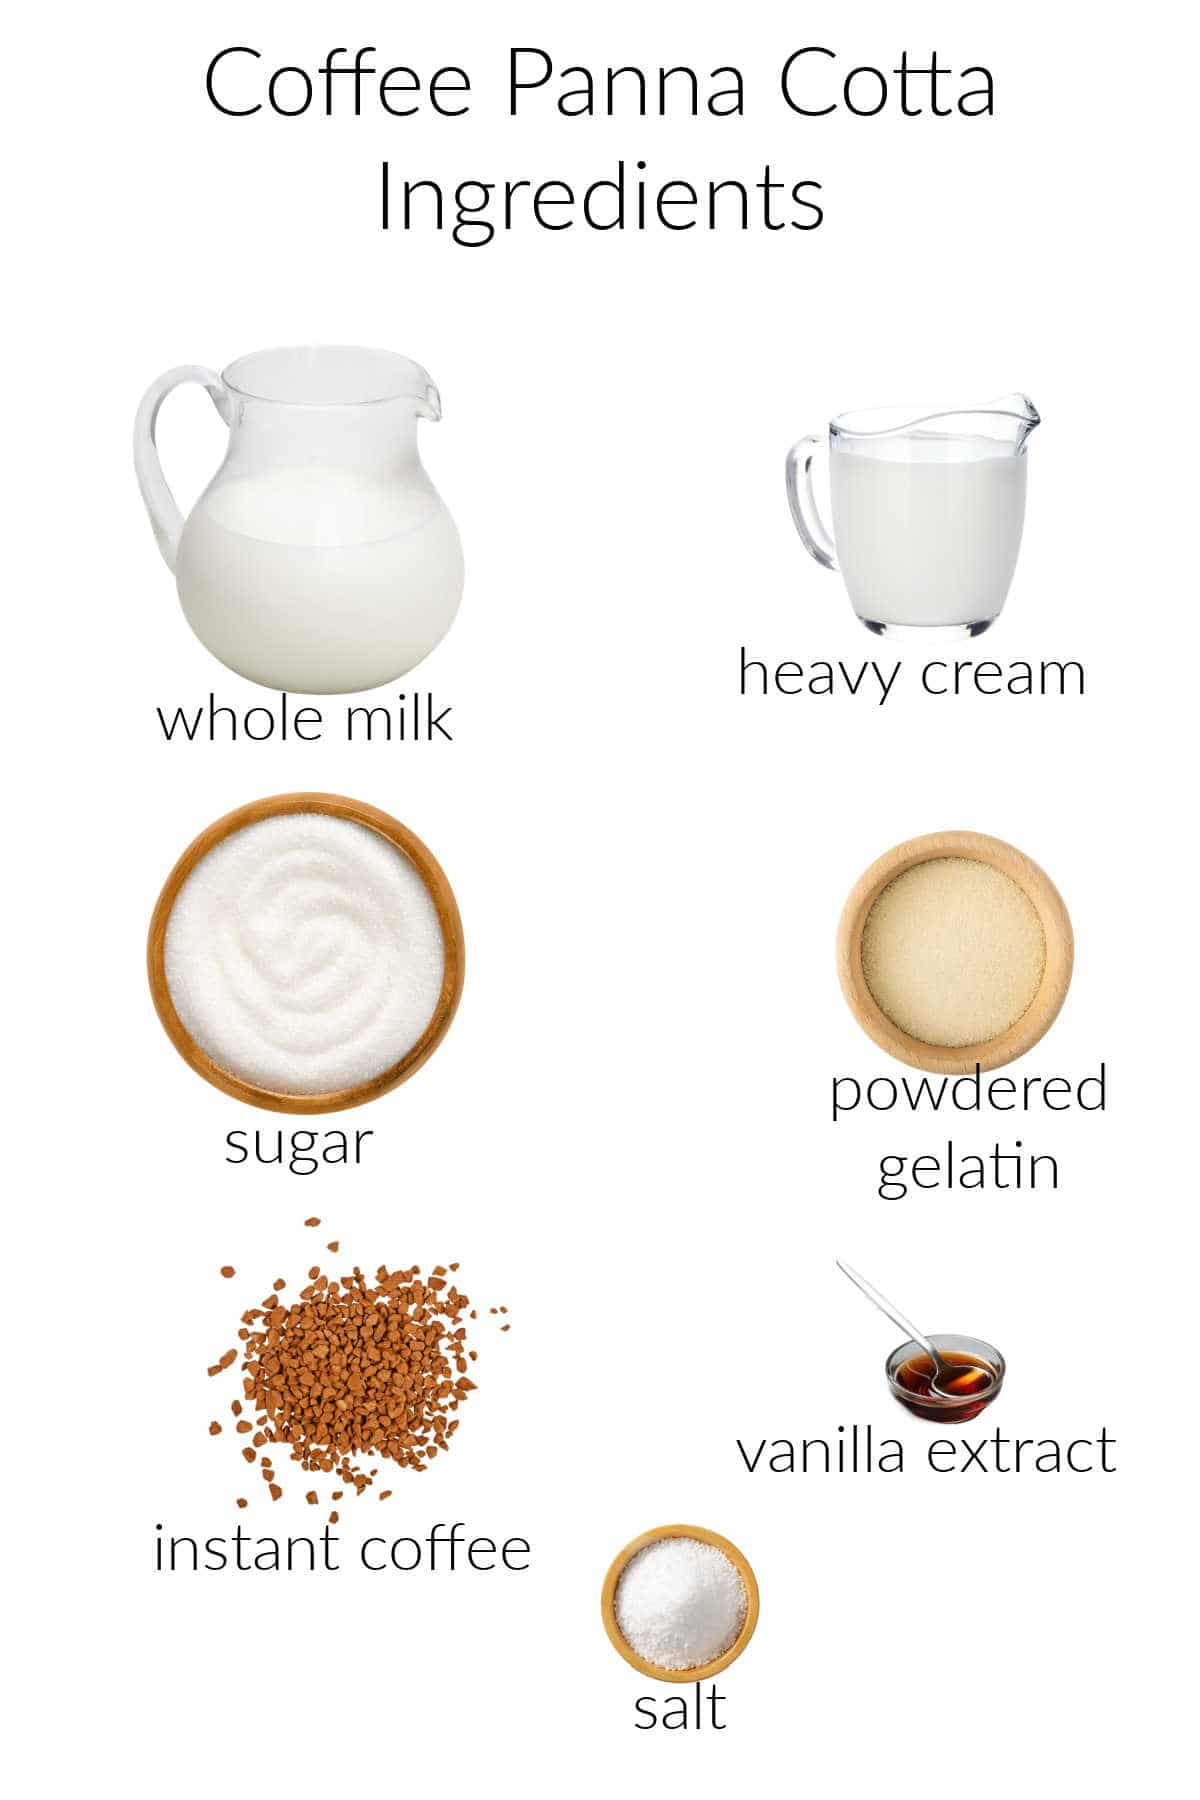 A collage of ingredients for making coffee panna cotta: Clear pitcher of whole milk, clear pitcher of heavy cream, round wooden bowl of white sugar, small round wooden bowl of powdered gelatin, instant coffee granules poured in a pile, a small clear bowl of vanilla extract with a metal spoon, a small wooden bowl with salt granules.